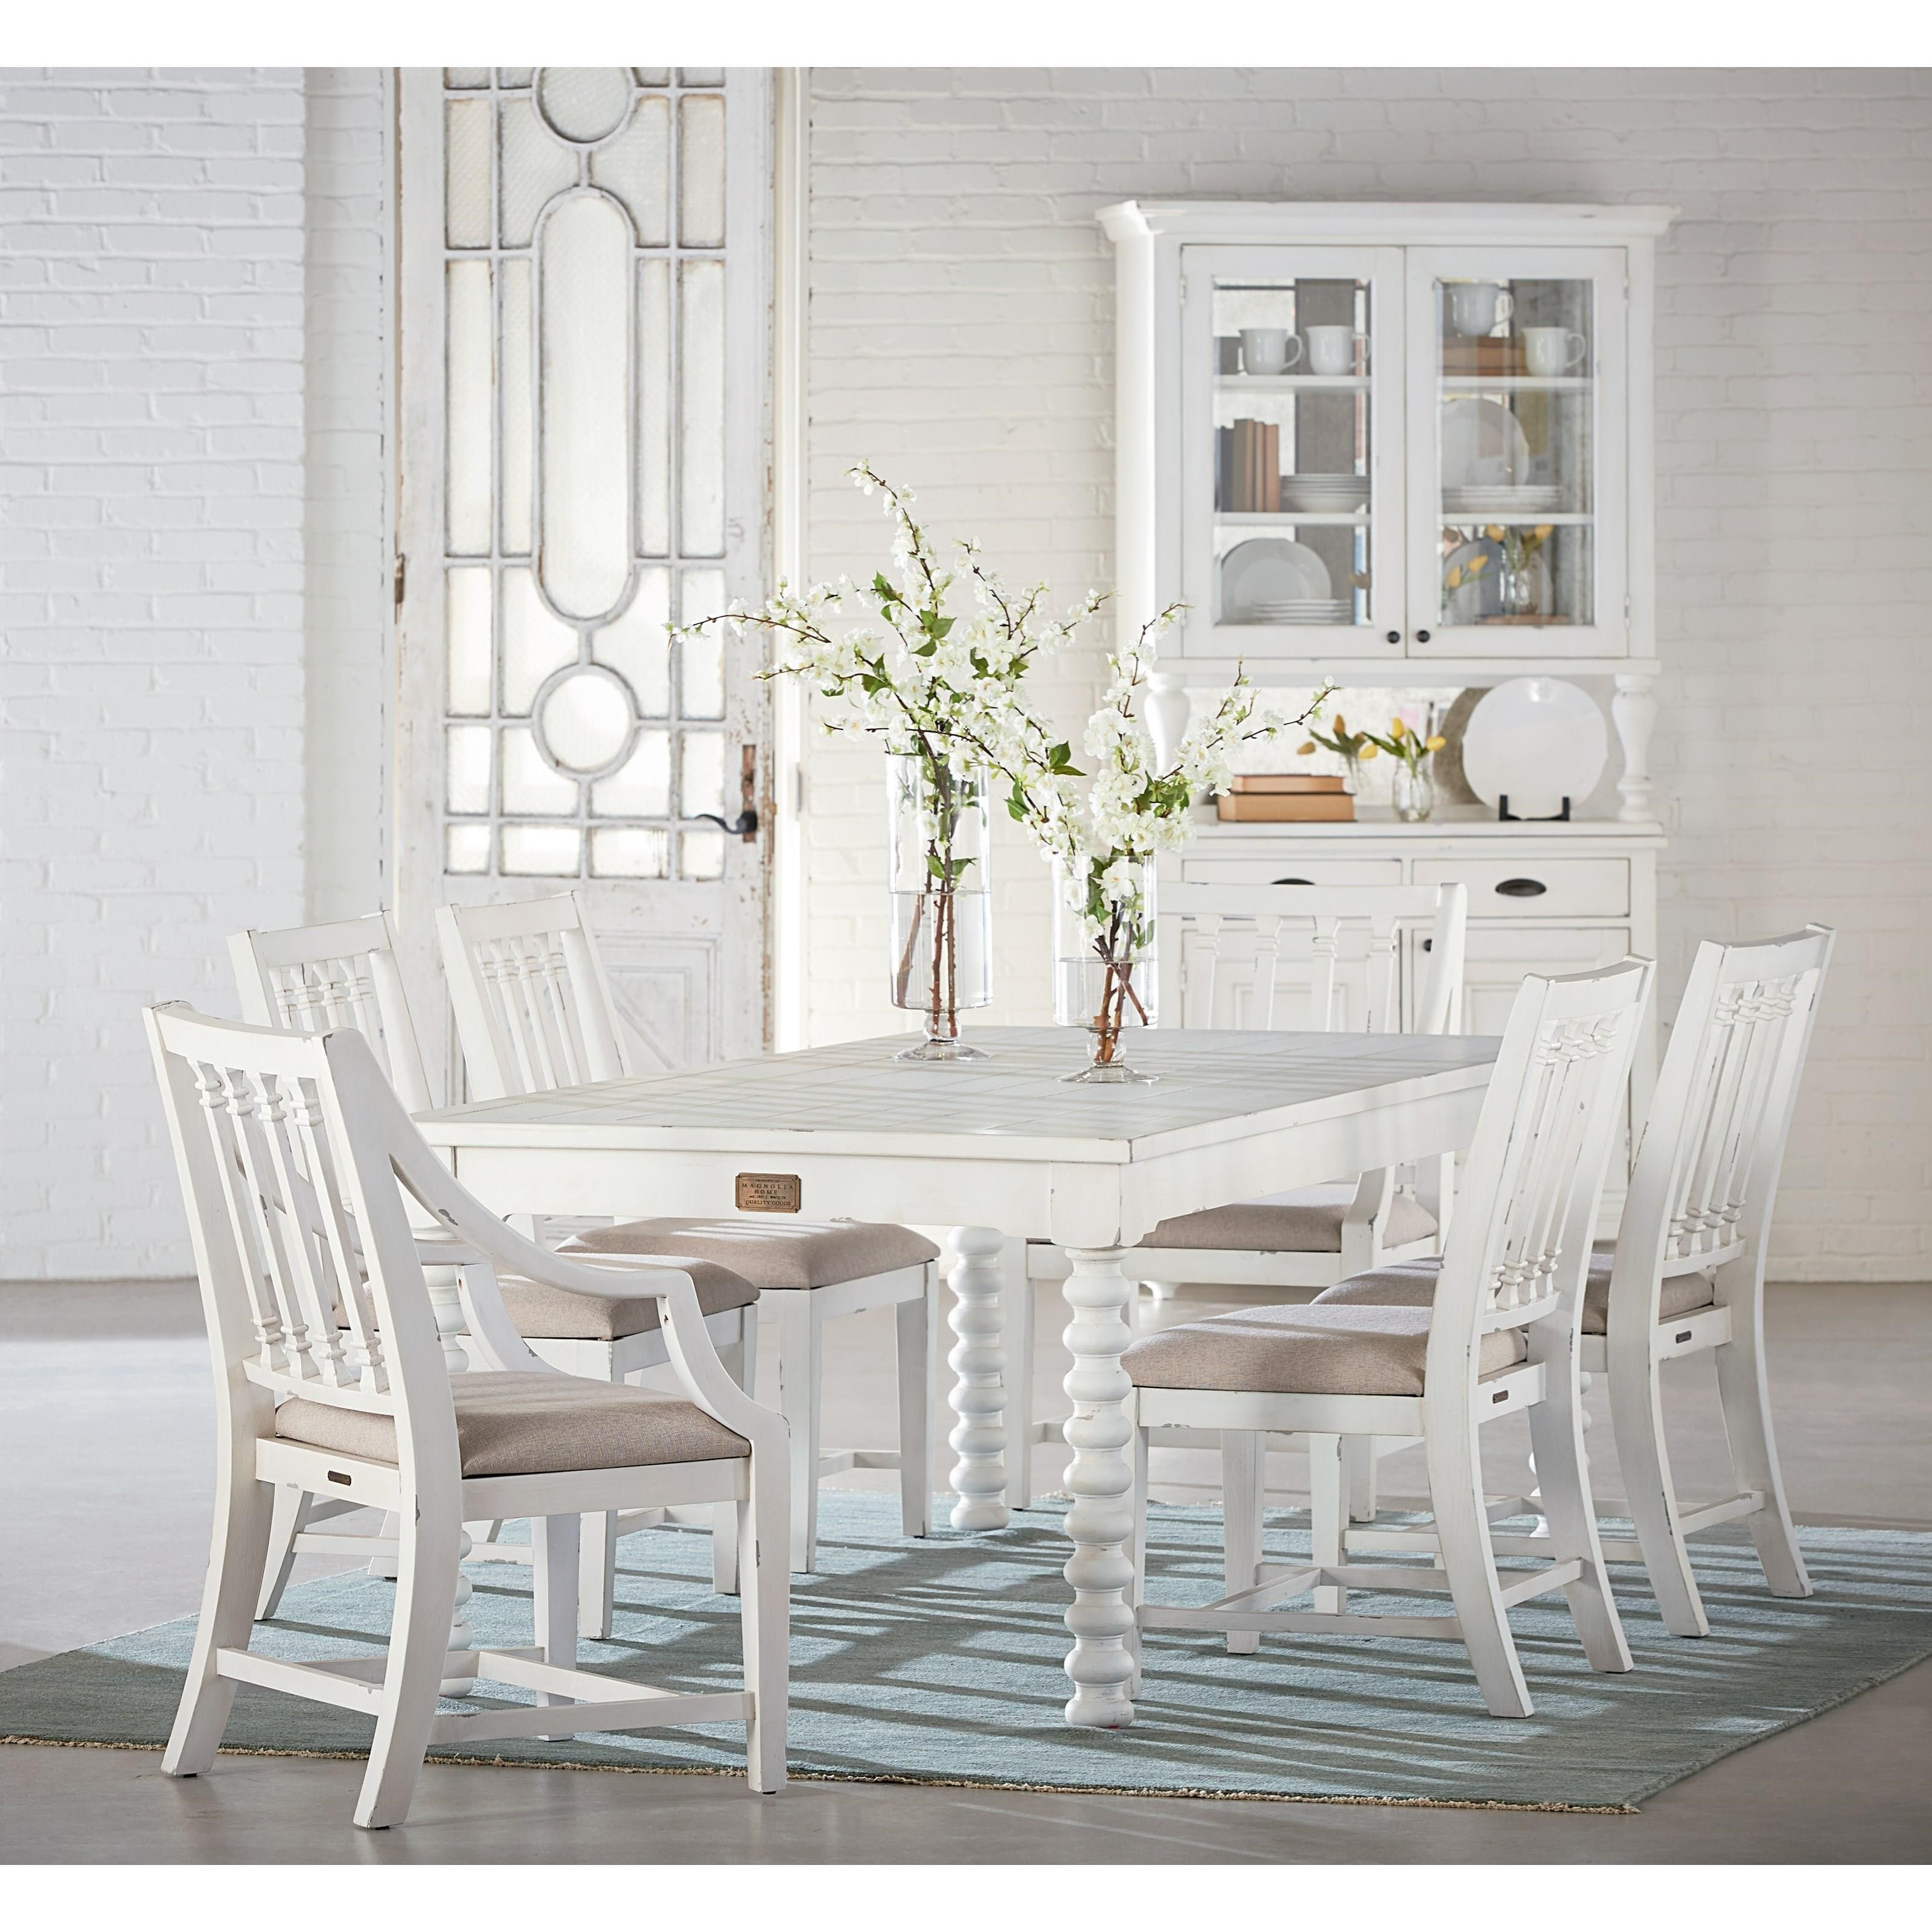 Dining room table with spool legs by magnolia home by for Magnolia dining table